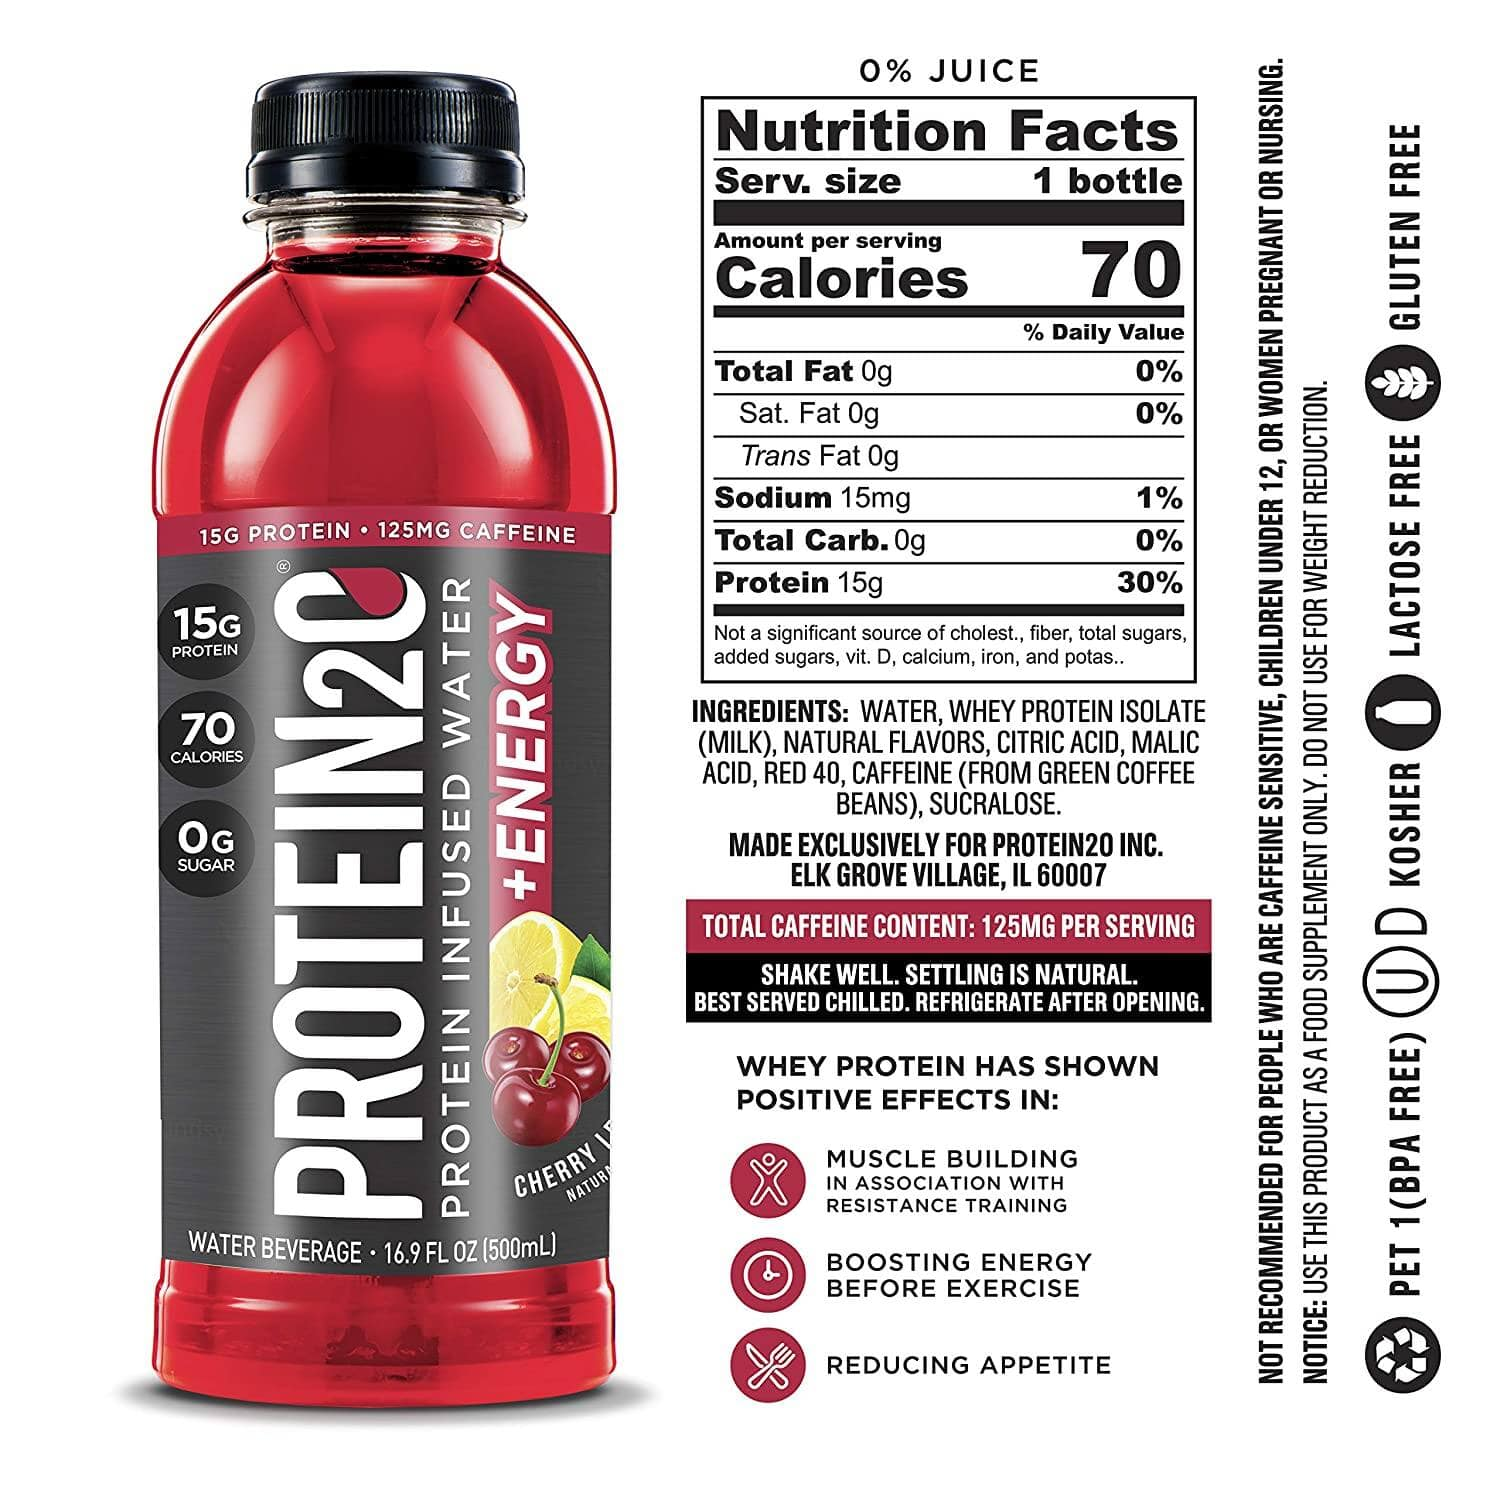 Protein2o + Energy, 15g Whey Protein Isolate, Cherry Lemonade (Pack of 12) $12.99